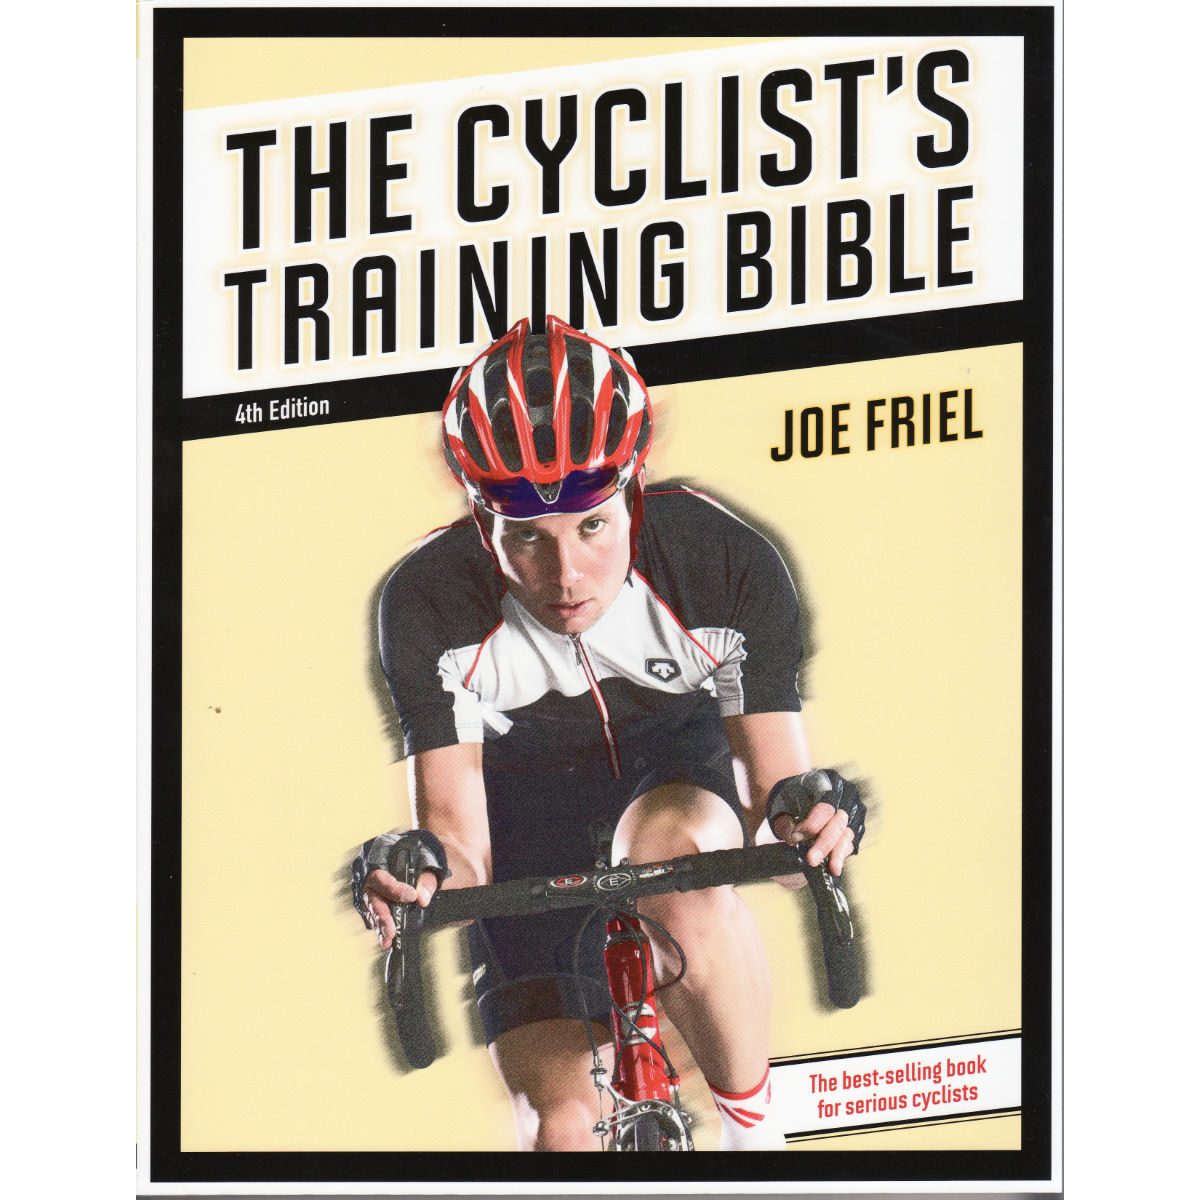 Velopress « Cyclists Training Bible > (La Bible de l'entraînement des cyclistes)